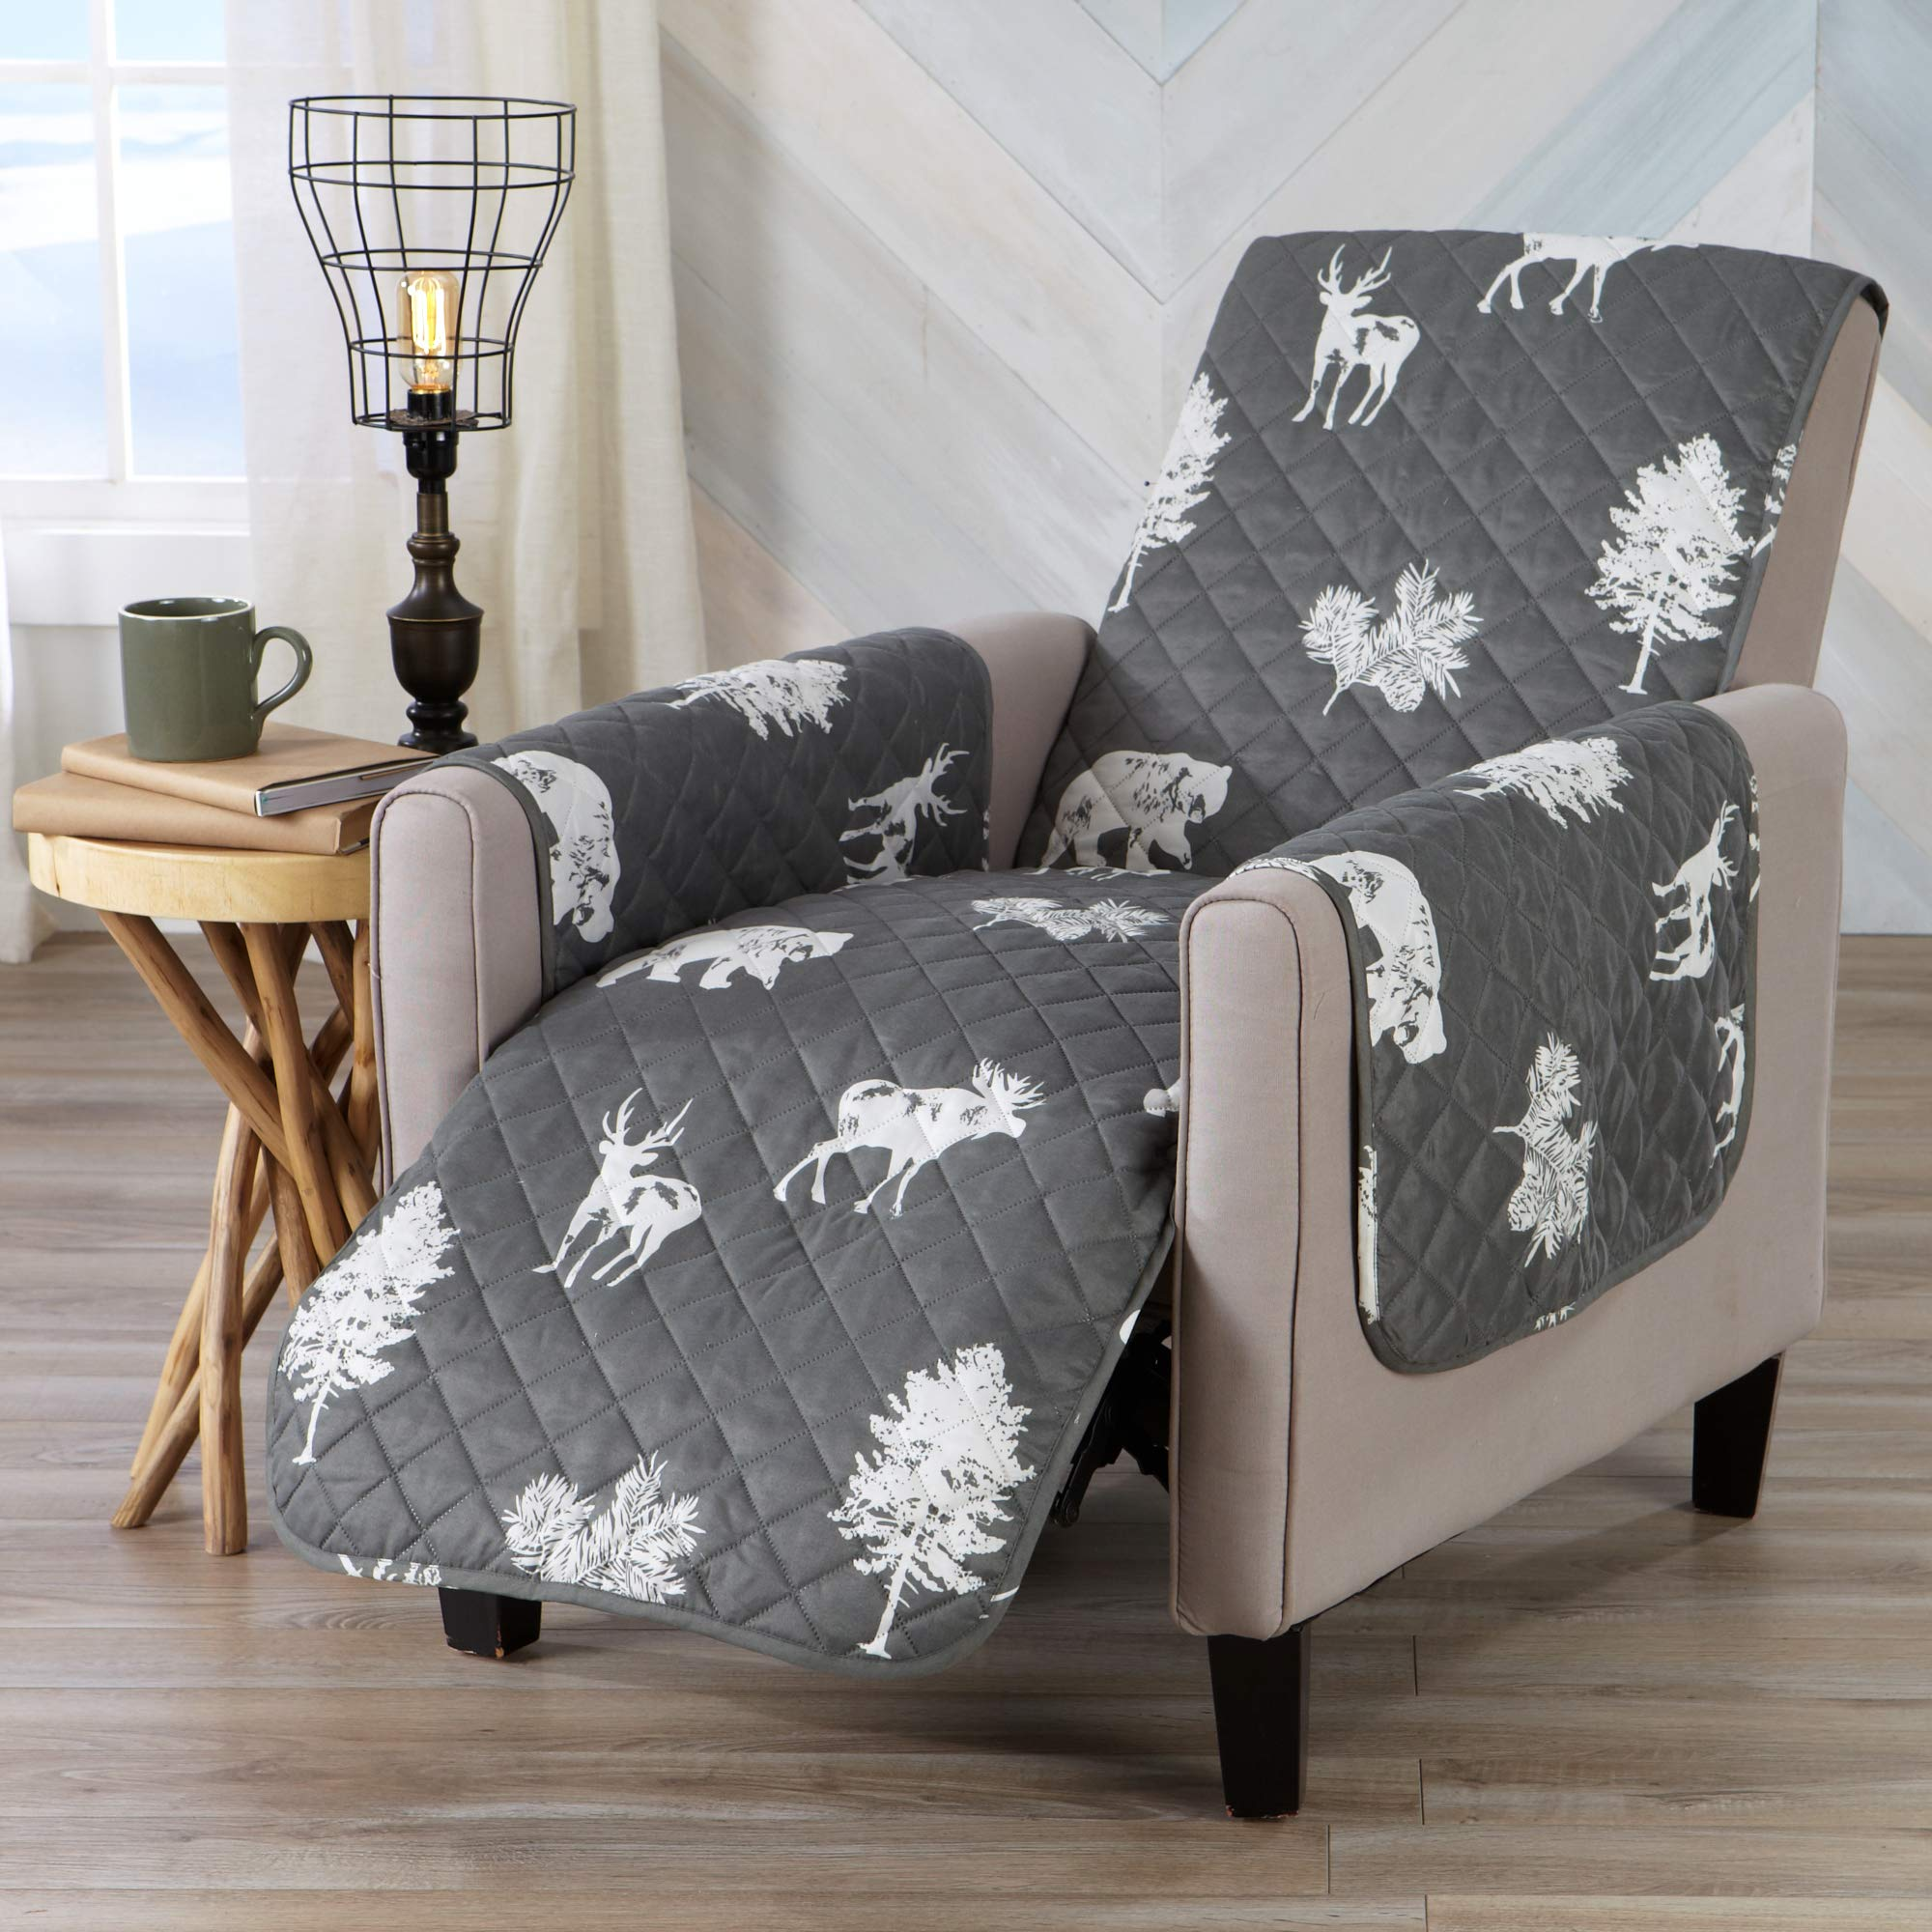 Sofa Saver Lodge Reversible Stain Resistant Printed Furniture Protector. Perfect for Pets and Kids. Adjustable Elastic Straps Included. (Recliner, Forest Animals)